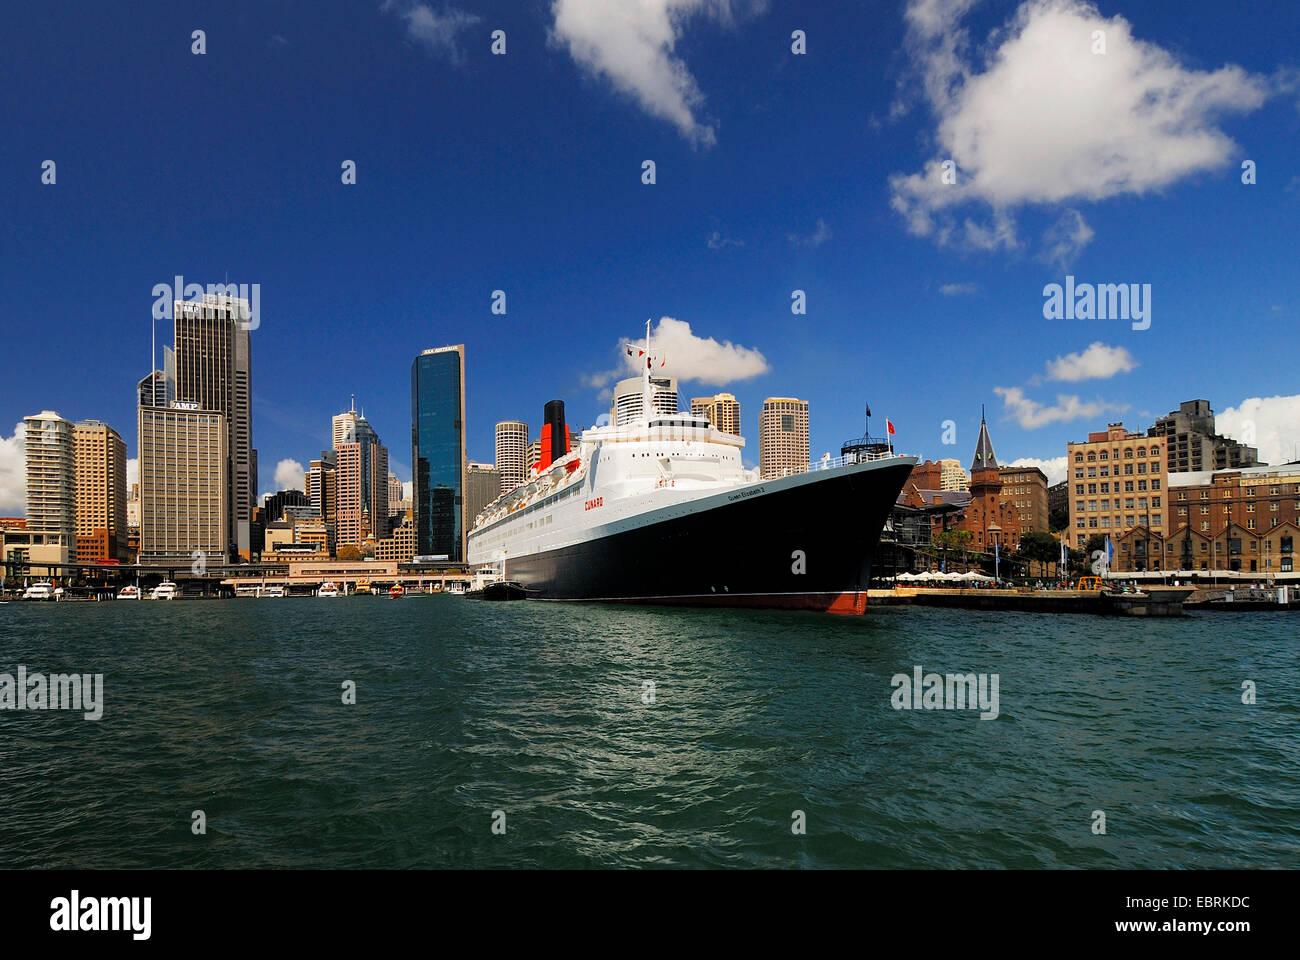 Queen Elizabeth 2 ocean liner in front of the skyline of Sydney, Circular Quay, Sydney Cove, Australia, New South - Stock Image